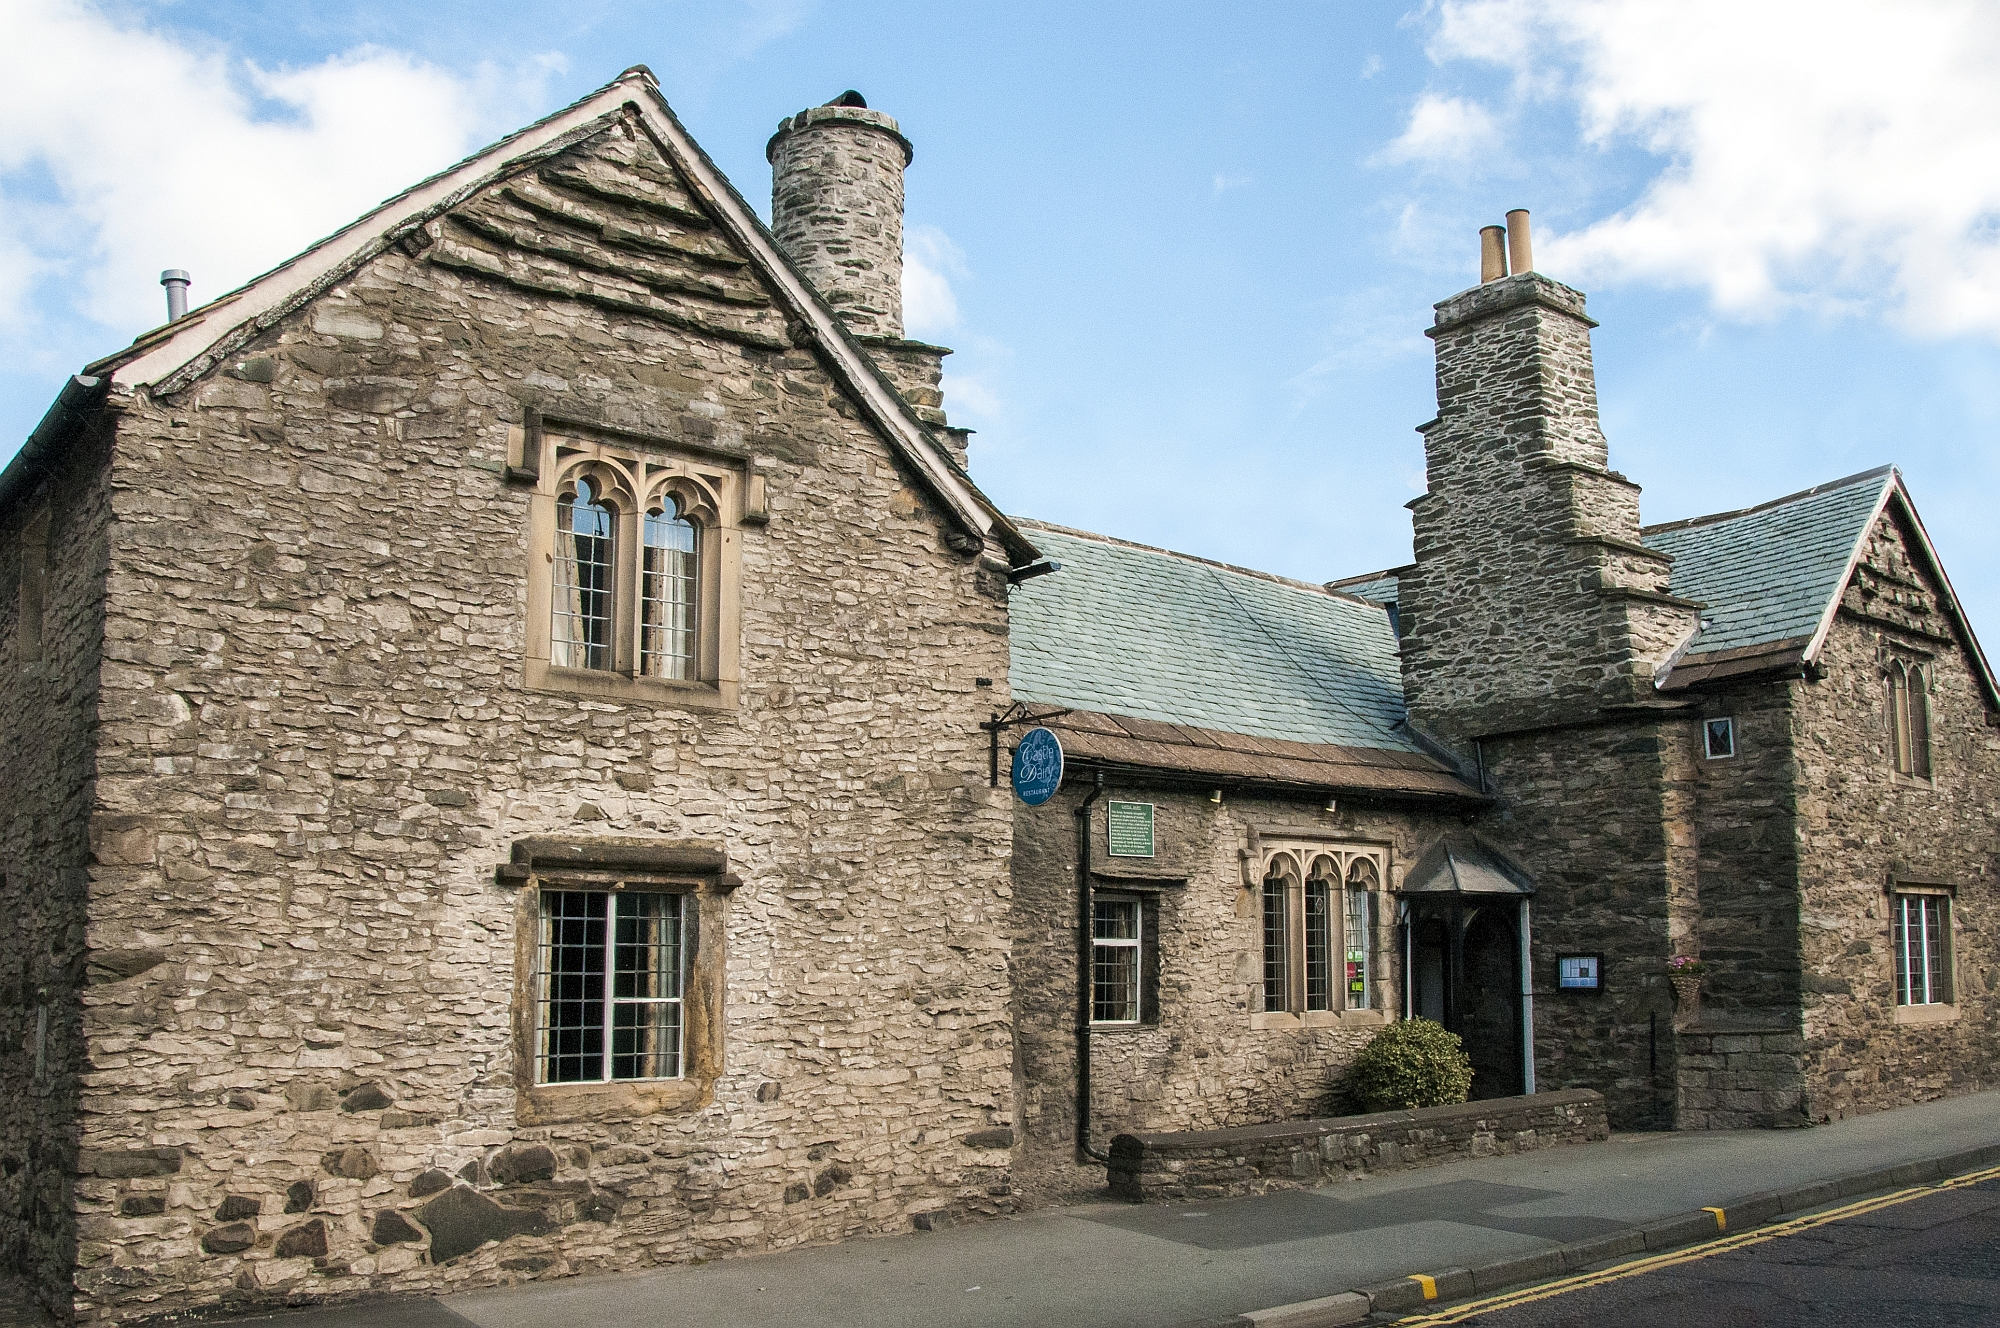 Restaurants | Castle Dairy Restaurant and Art Gallery offers a unique dining experience by 3AA rosette chef Chris O'Callaghan and his Kendal College apprentices in a historic building dating back to the 14th century